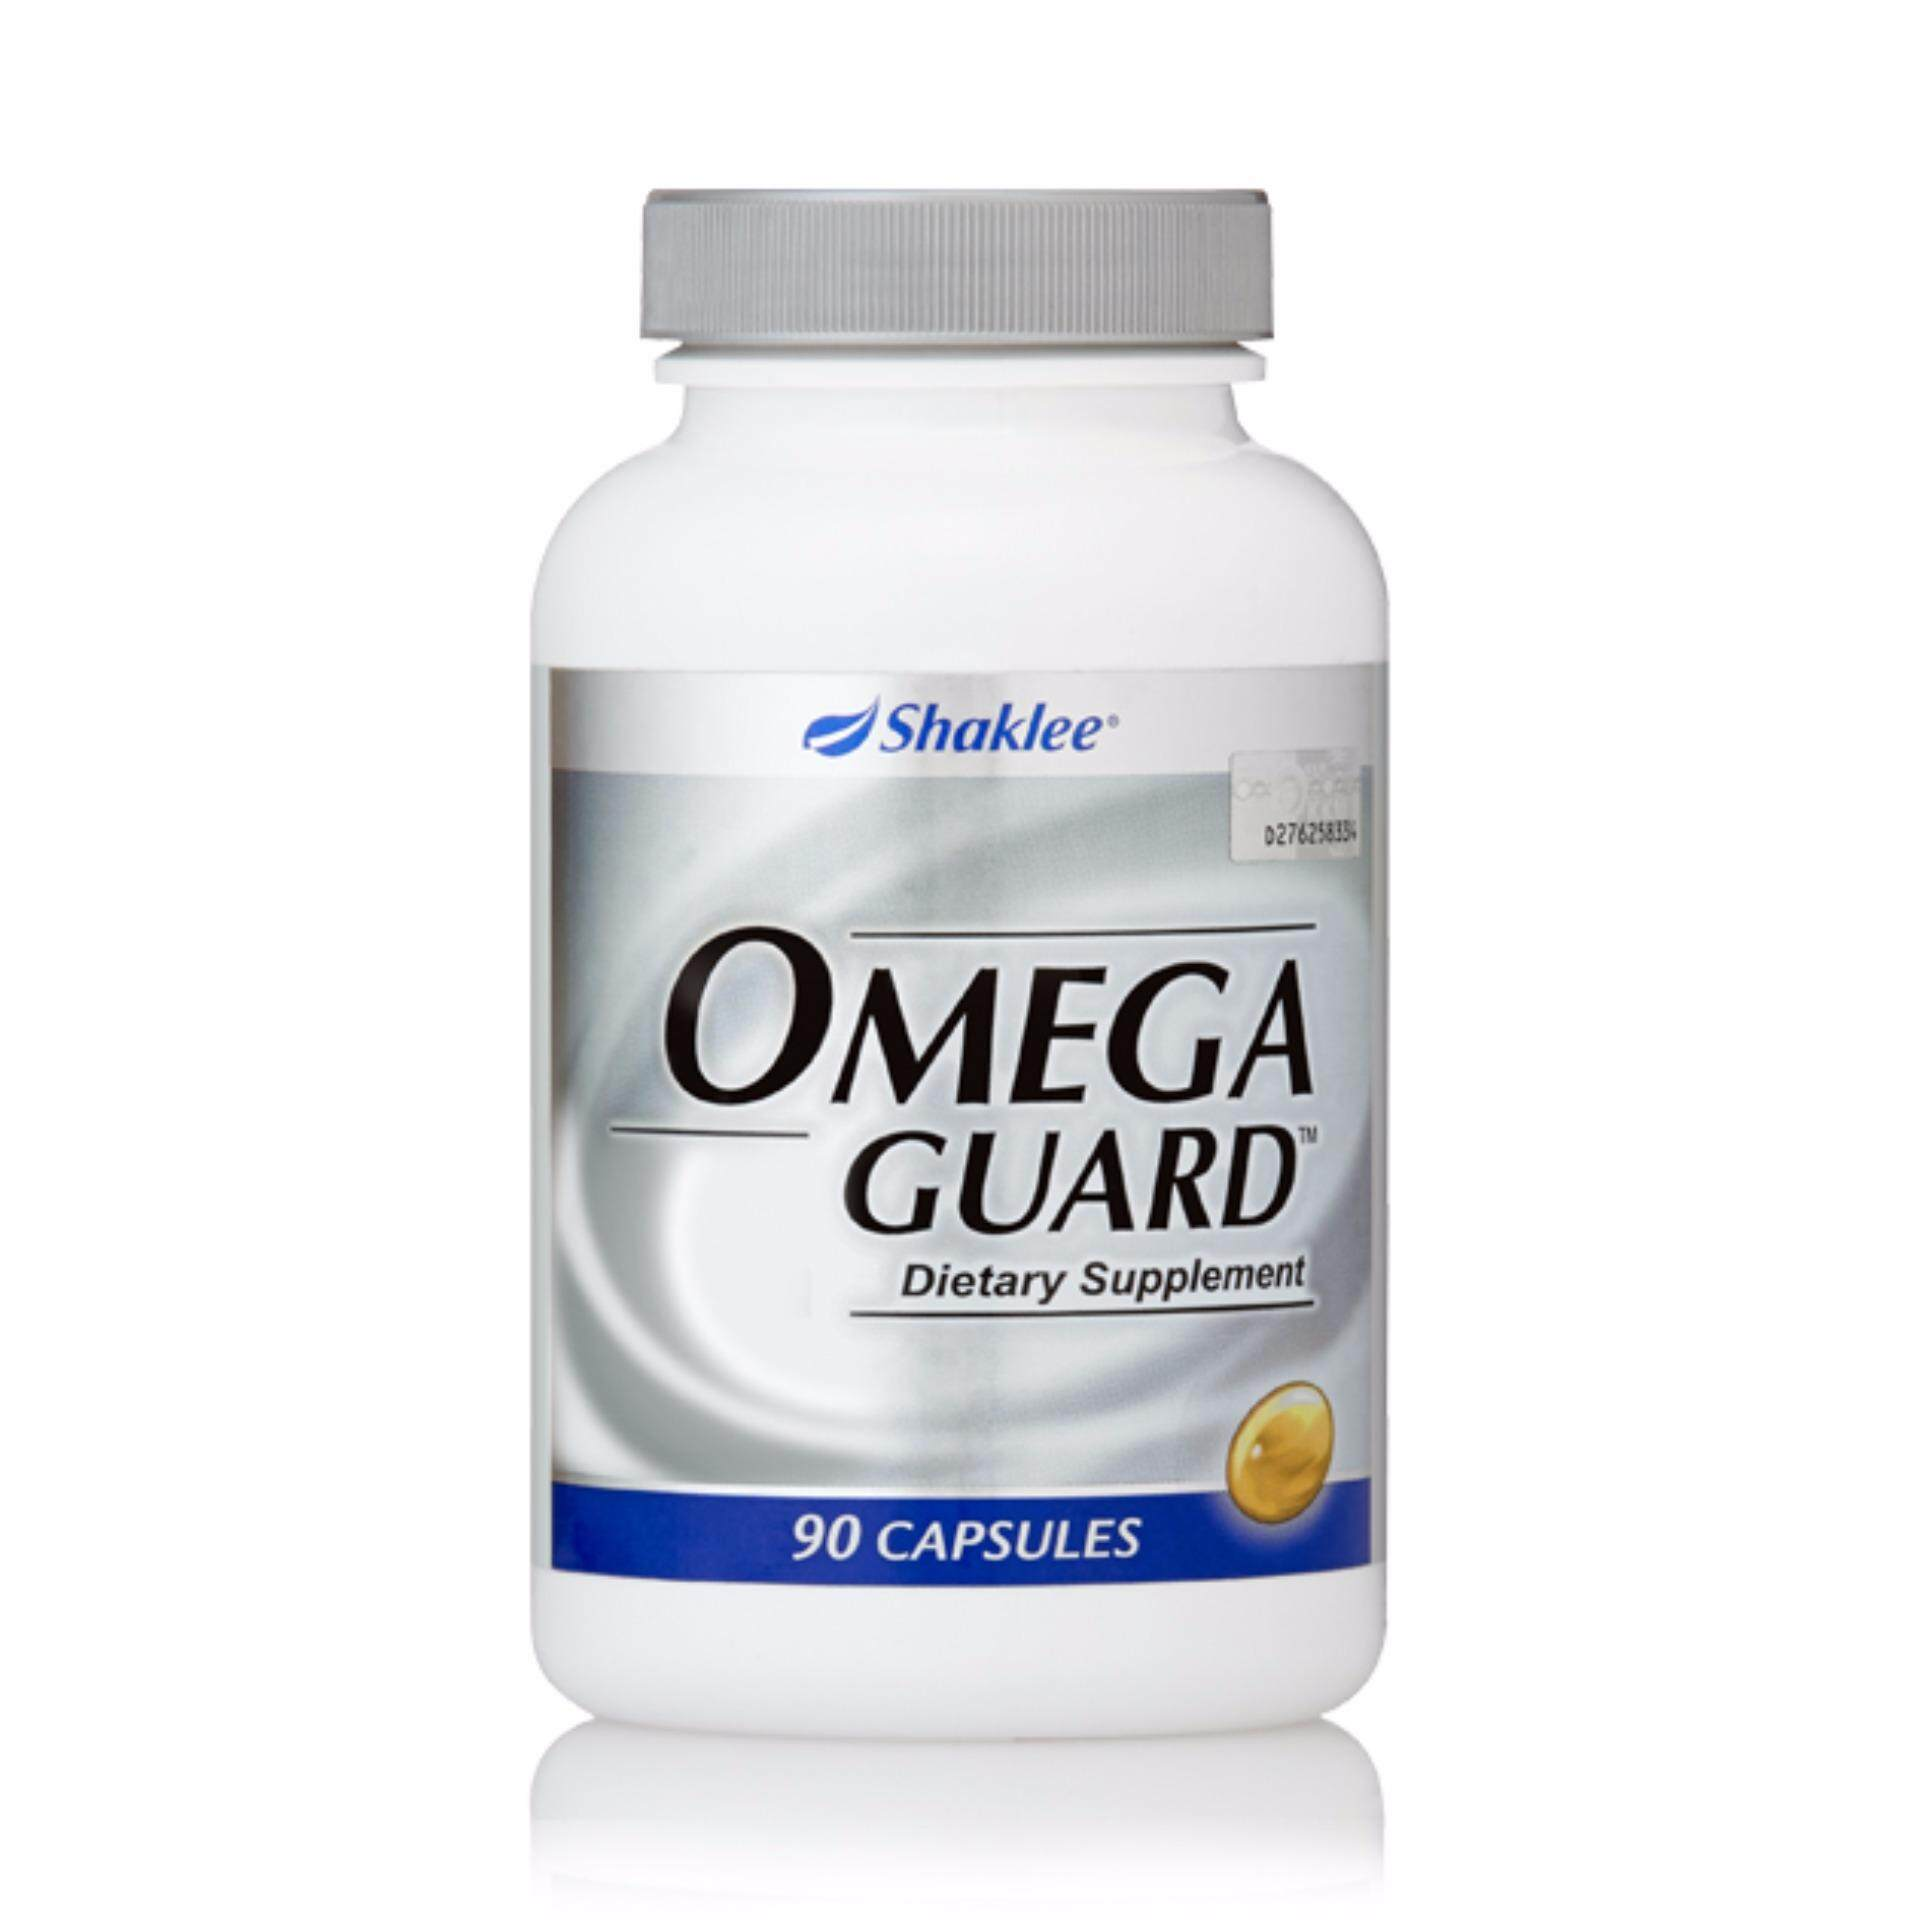 Image result for omega guard shaklee images